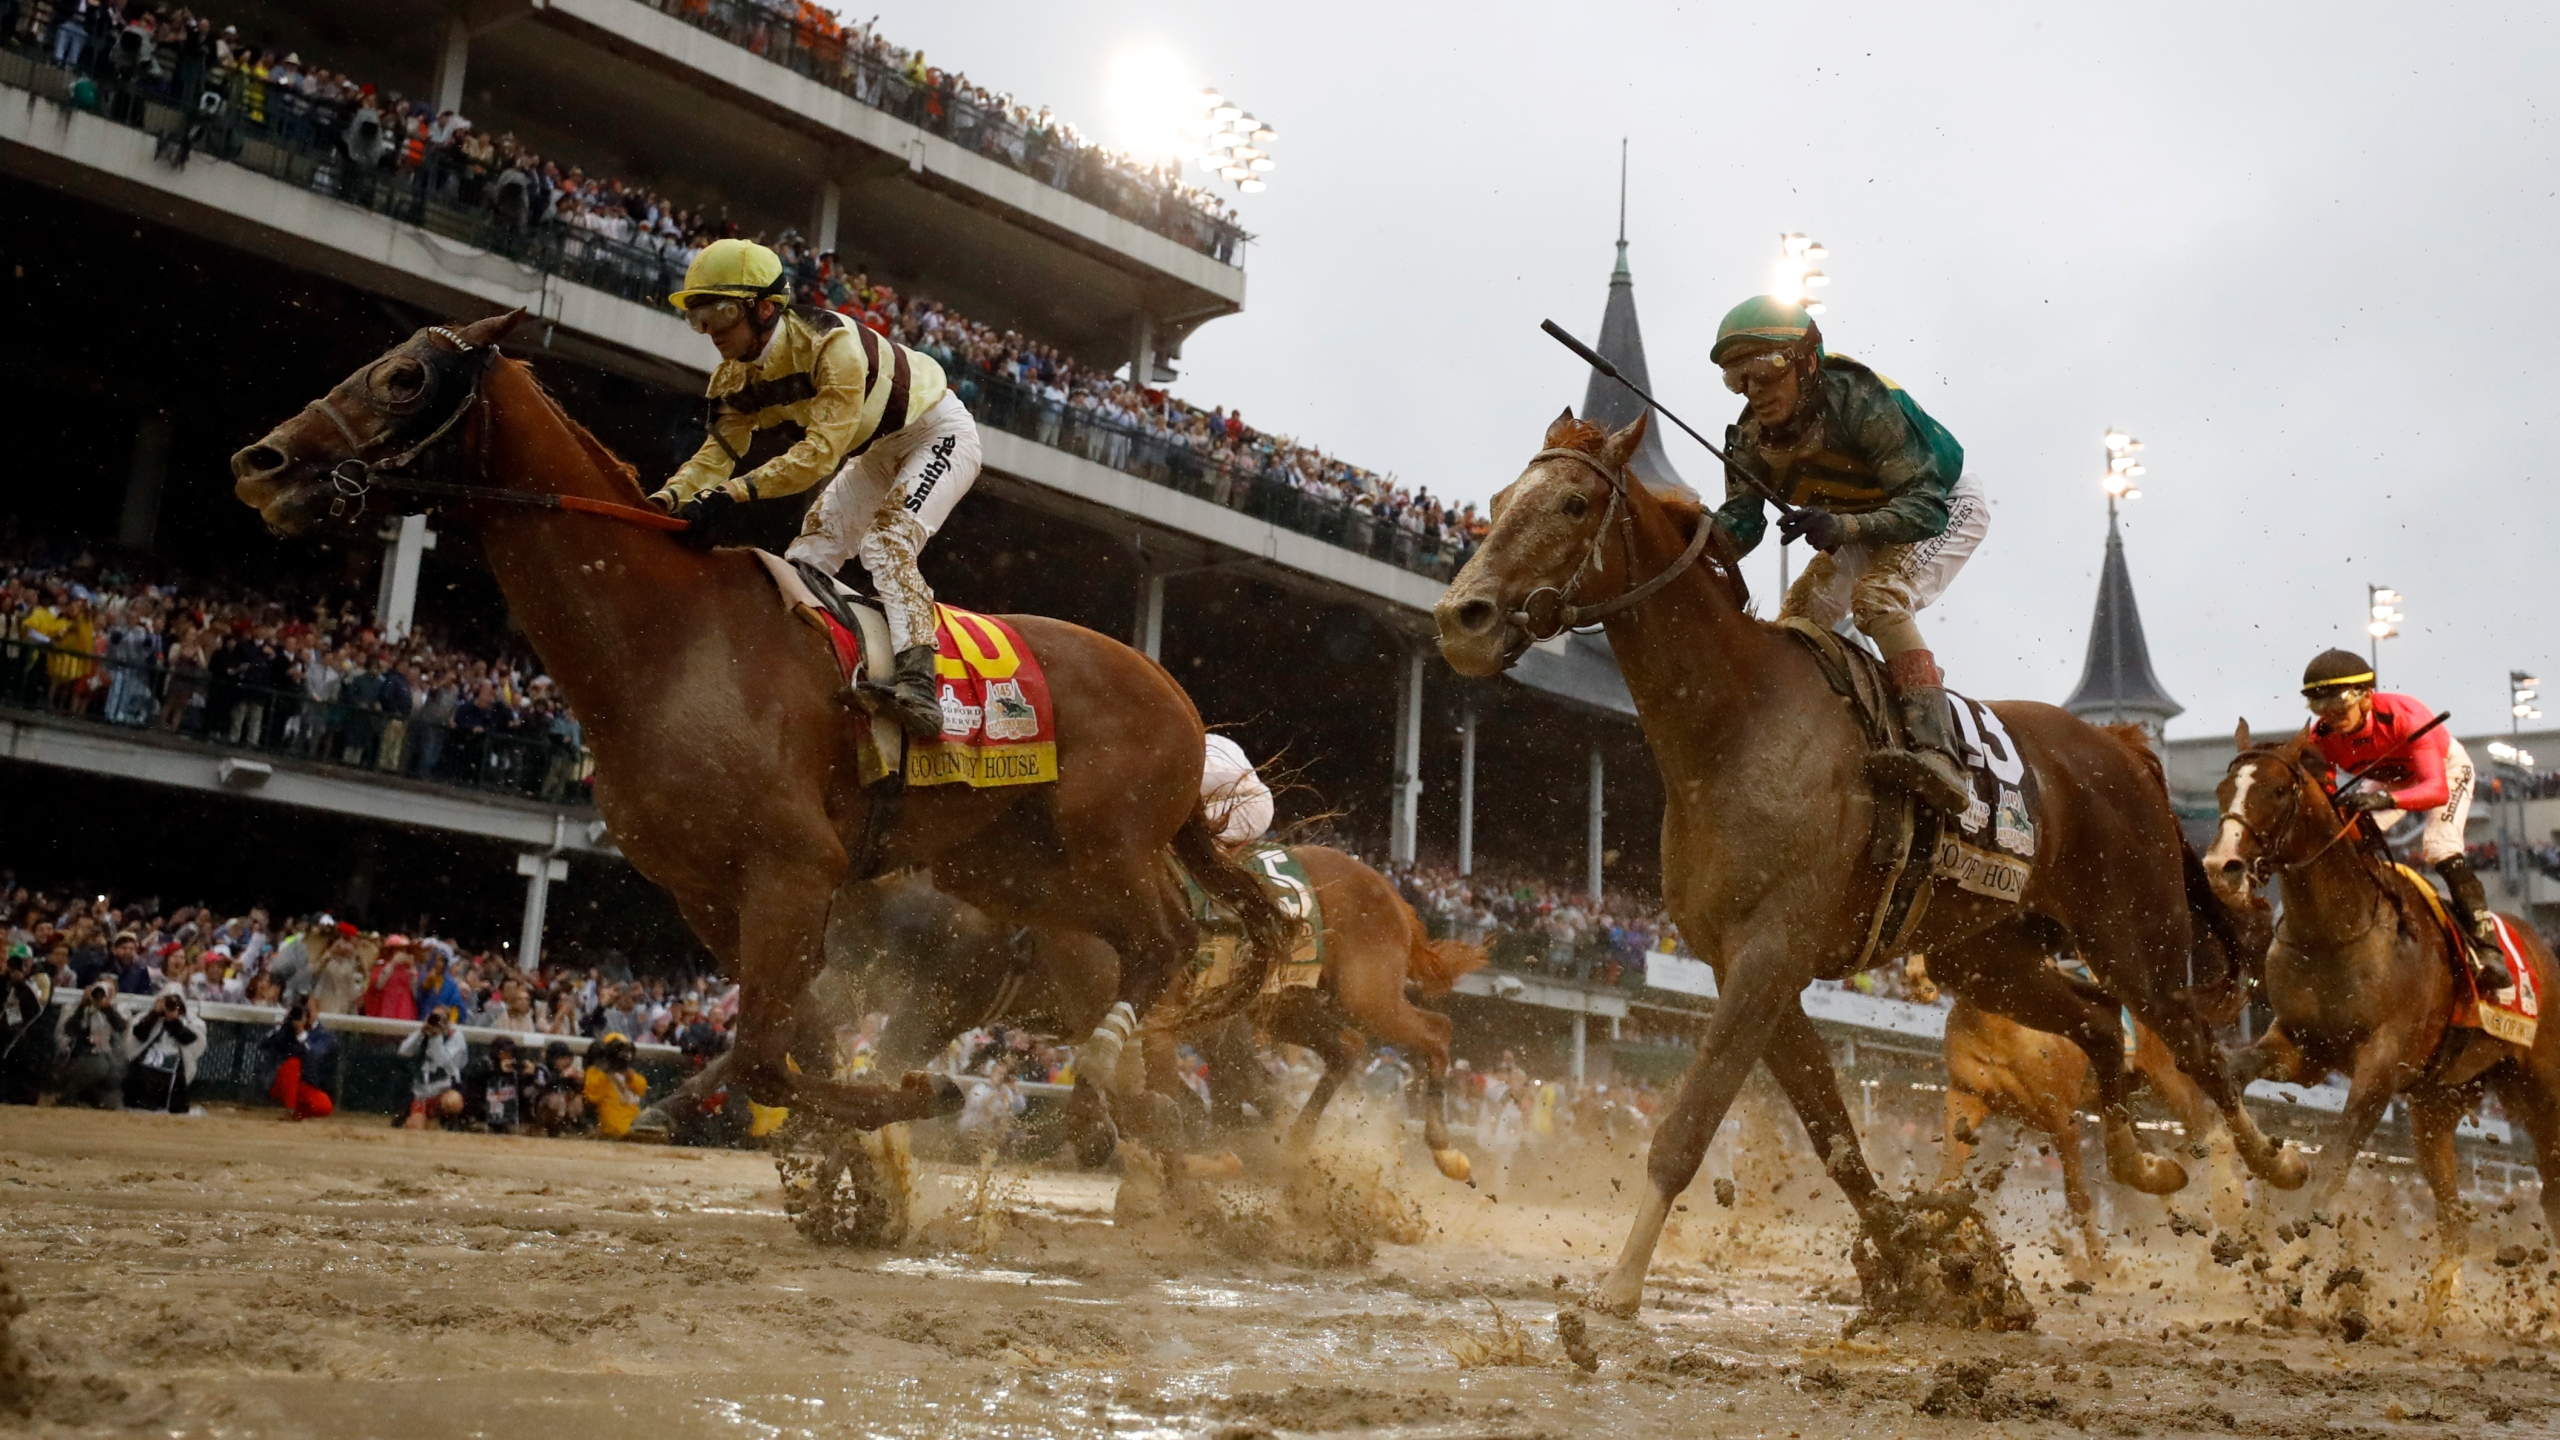 Kentucky_Derby_Horse_Racing_32877-159532.jpg42465762